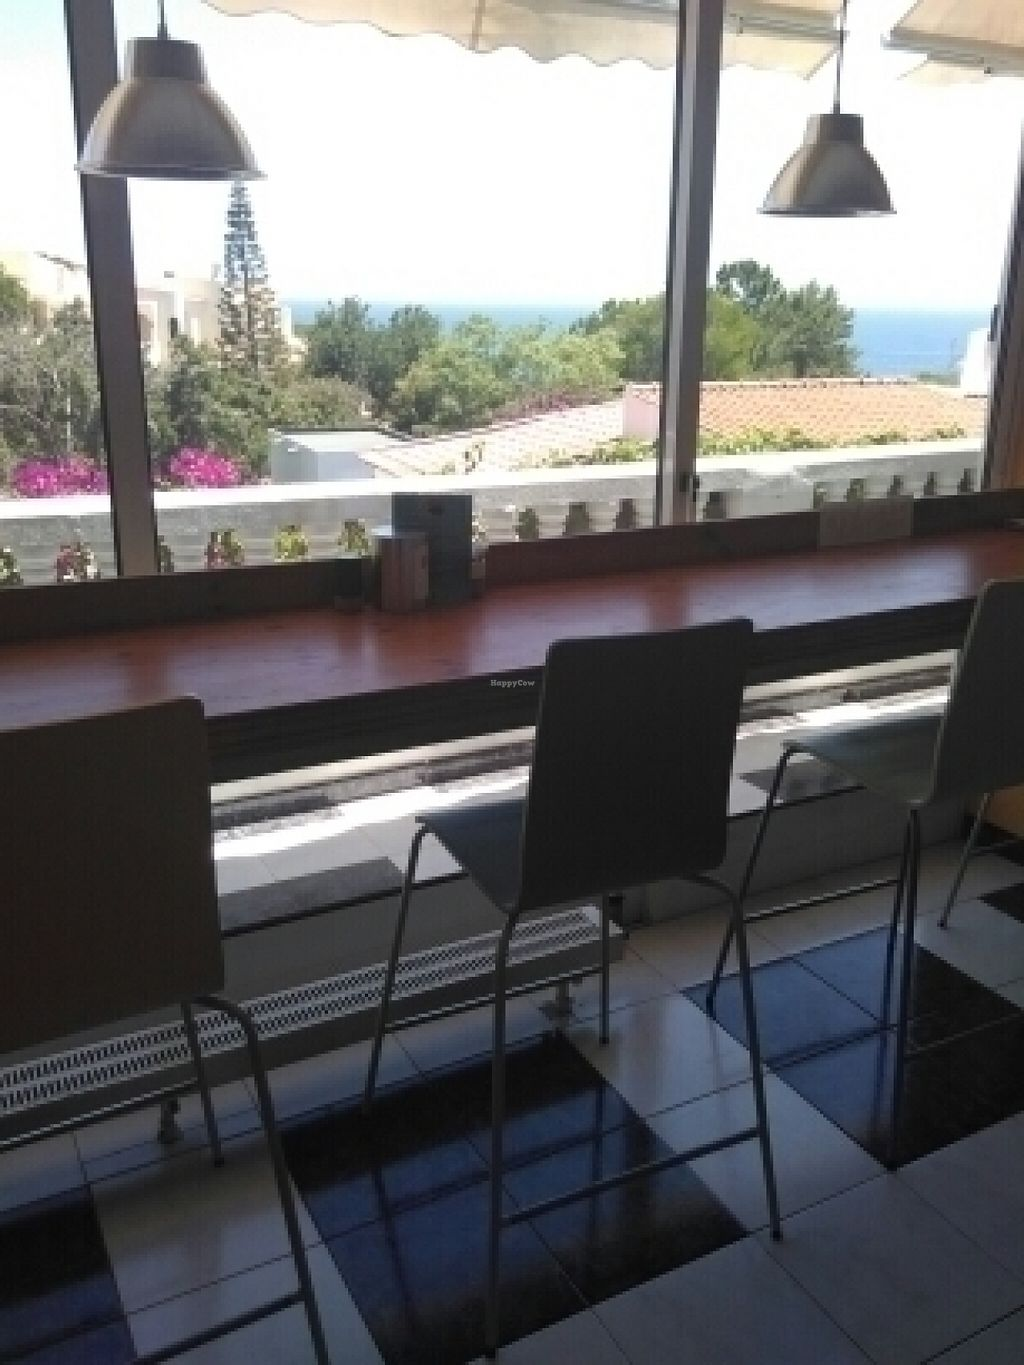 """Photo of Earth Shop and Cafe  by <a href=""""/members/profile/awaithelp"""">awaithelp</a> <br/>coffee with a view <br/> July 17, 2016  - <a href='/contact/abuse/image/76669/160513'>Report</a>"""